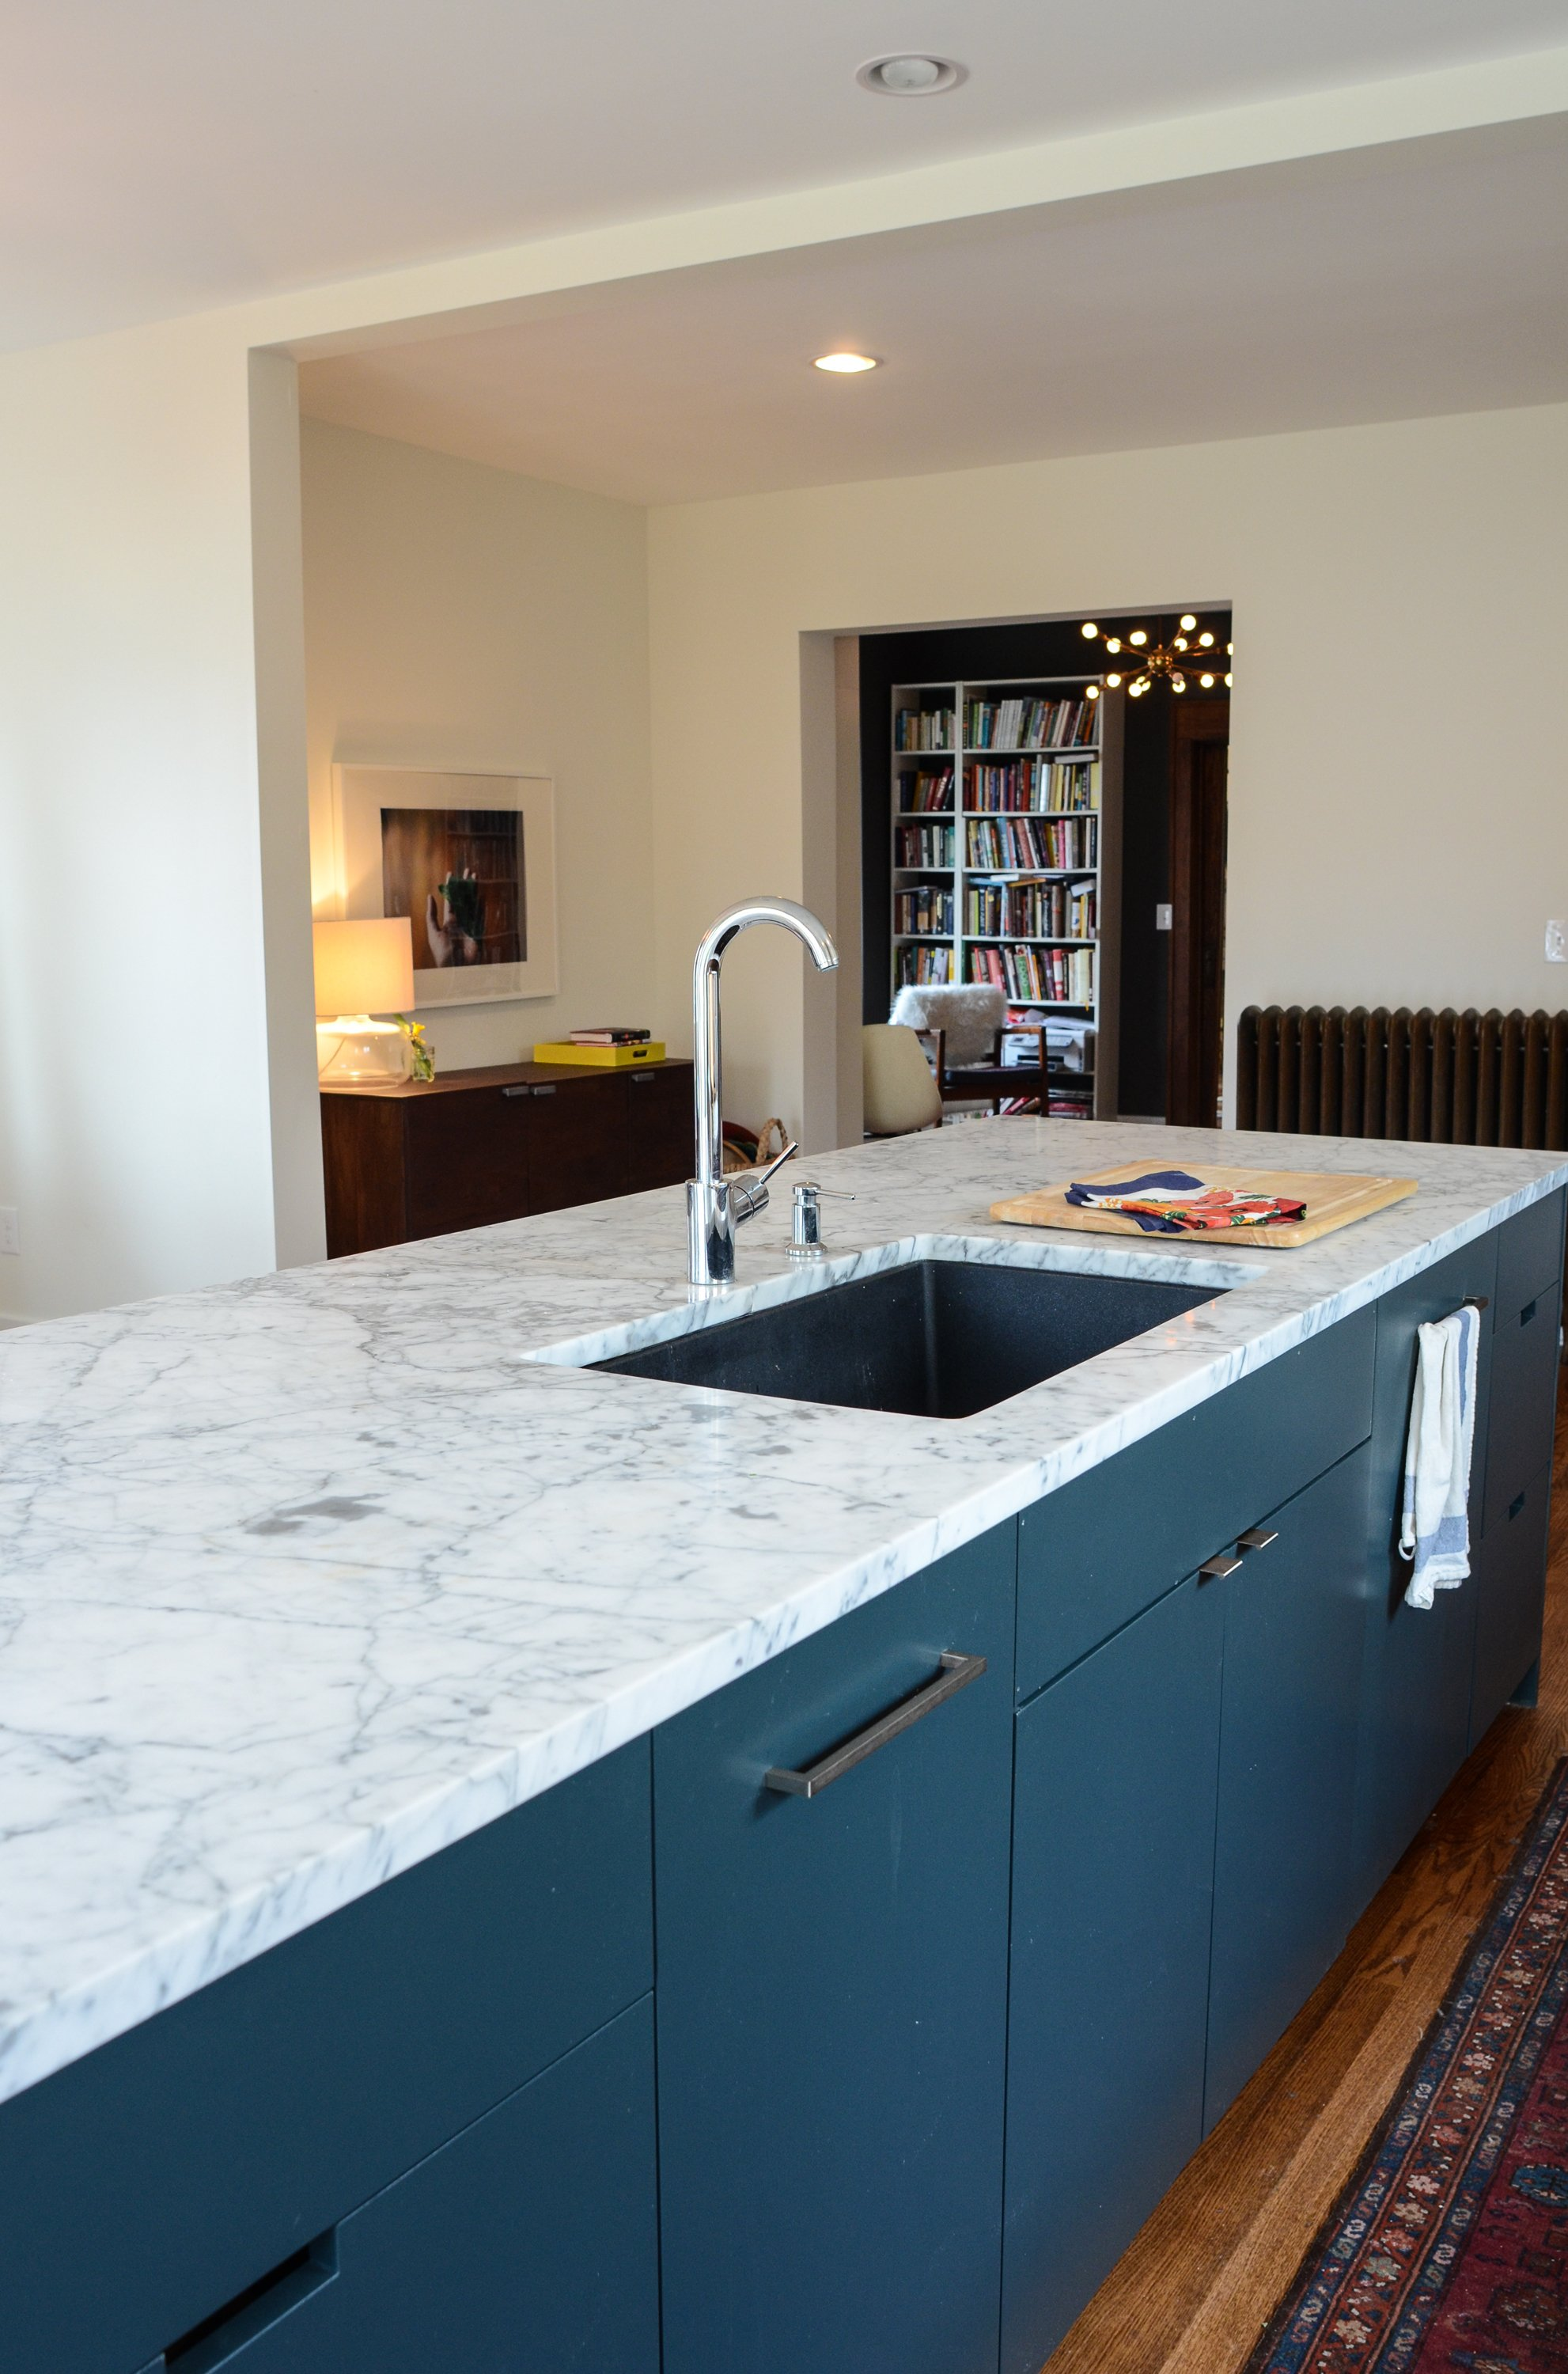 White Carrera Marble Kitchen Countertops My Experience Of Living With Marble Countertops One Year Later